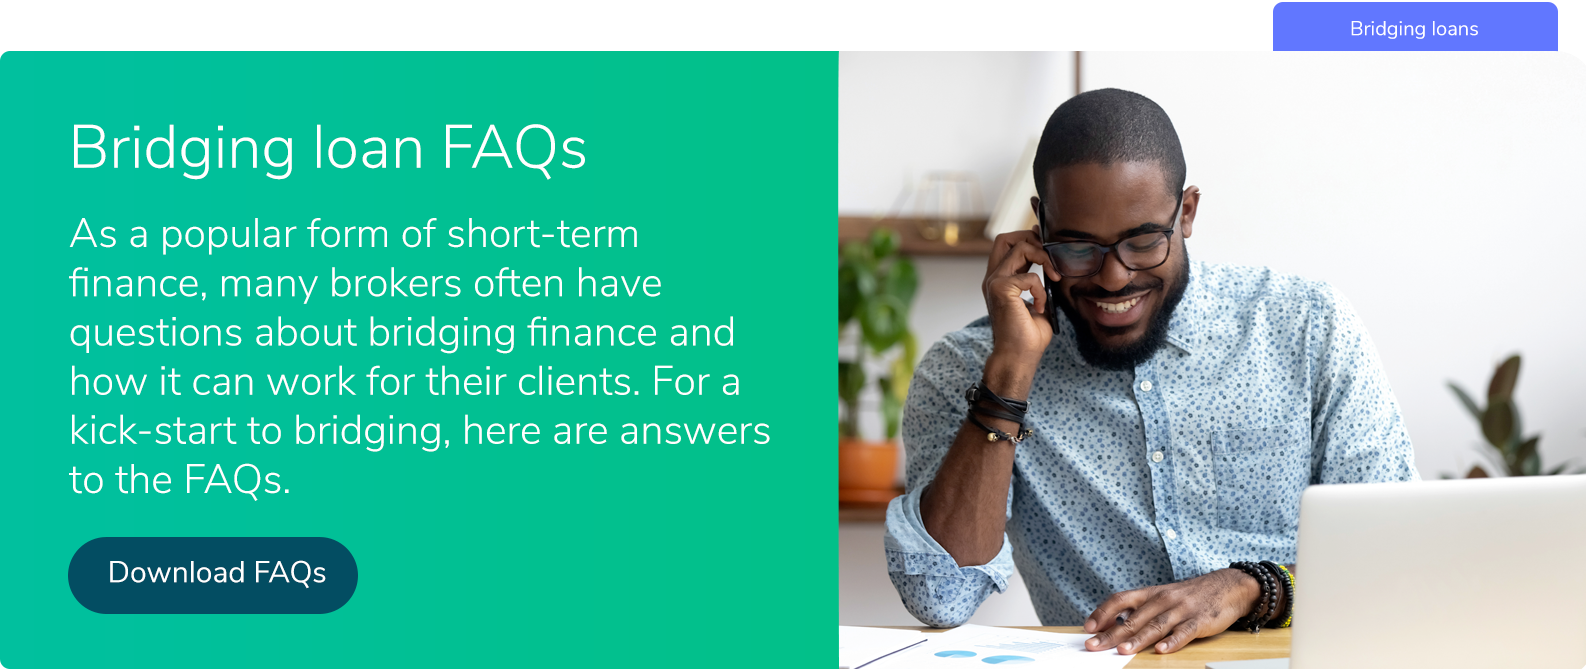 bridging loan FAQs